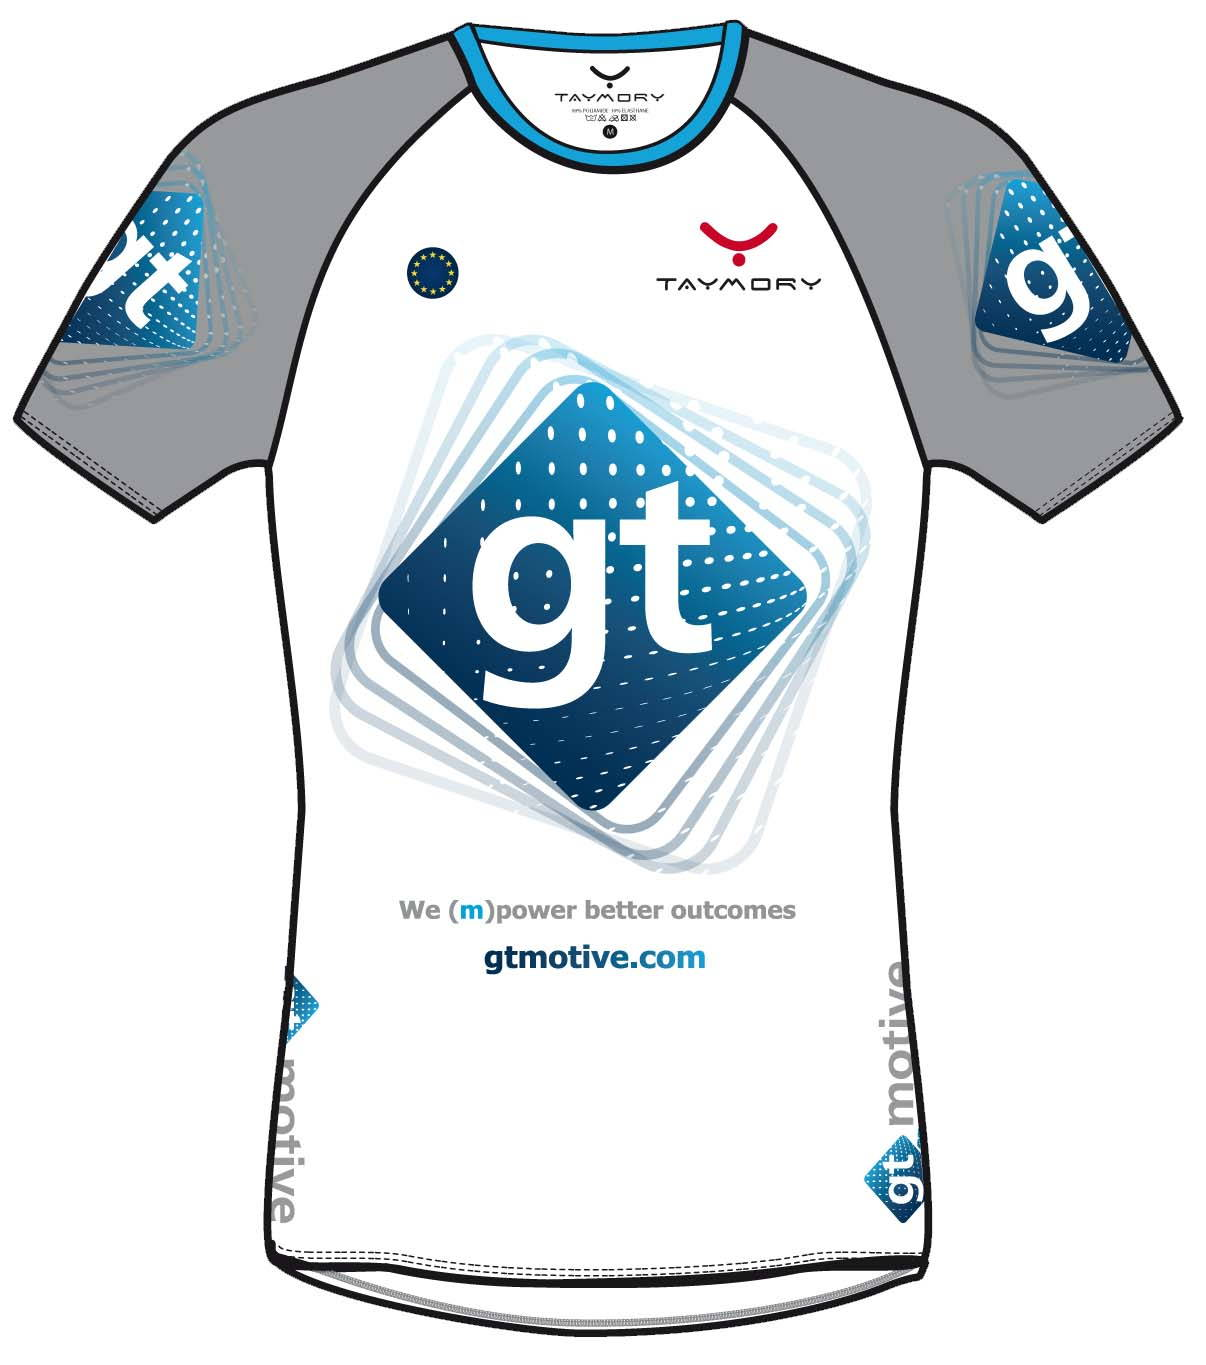 CAMISETA GT MOTIVE TAYMORY